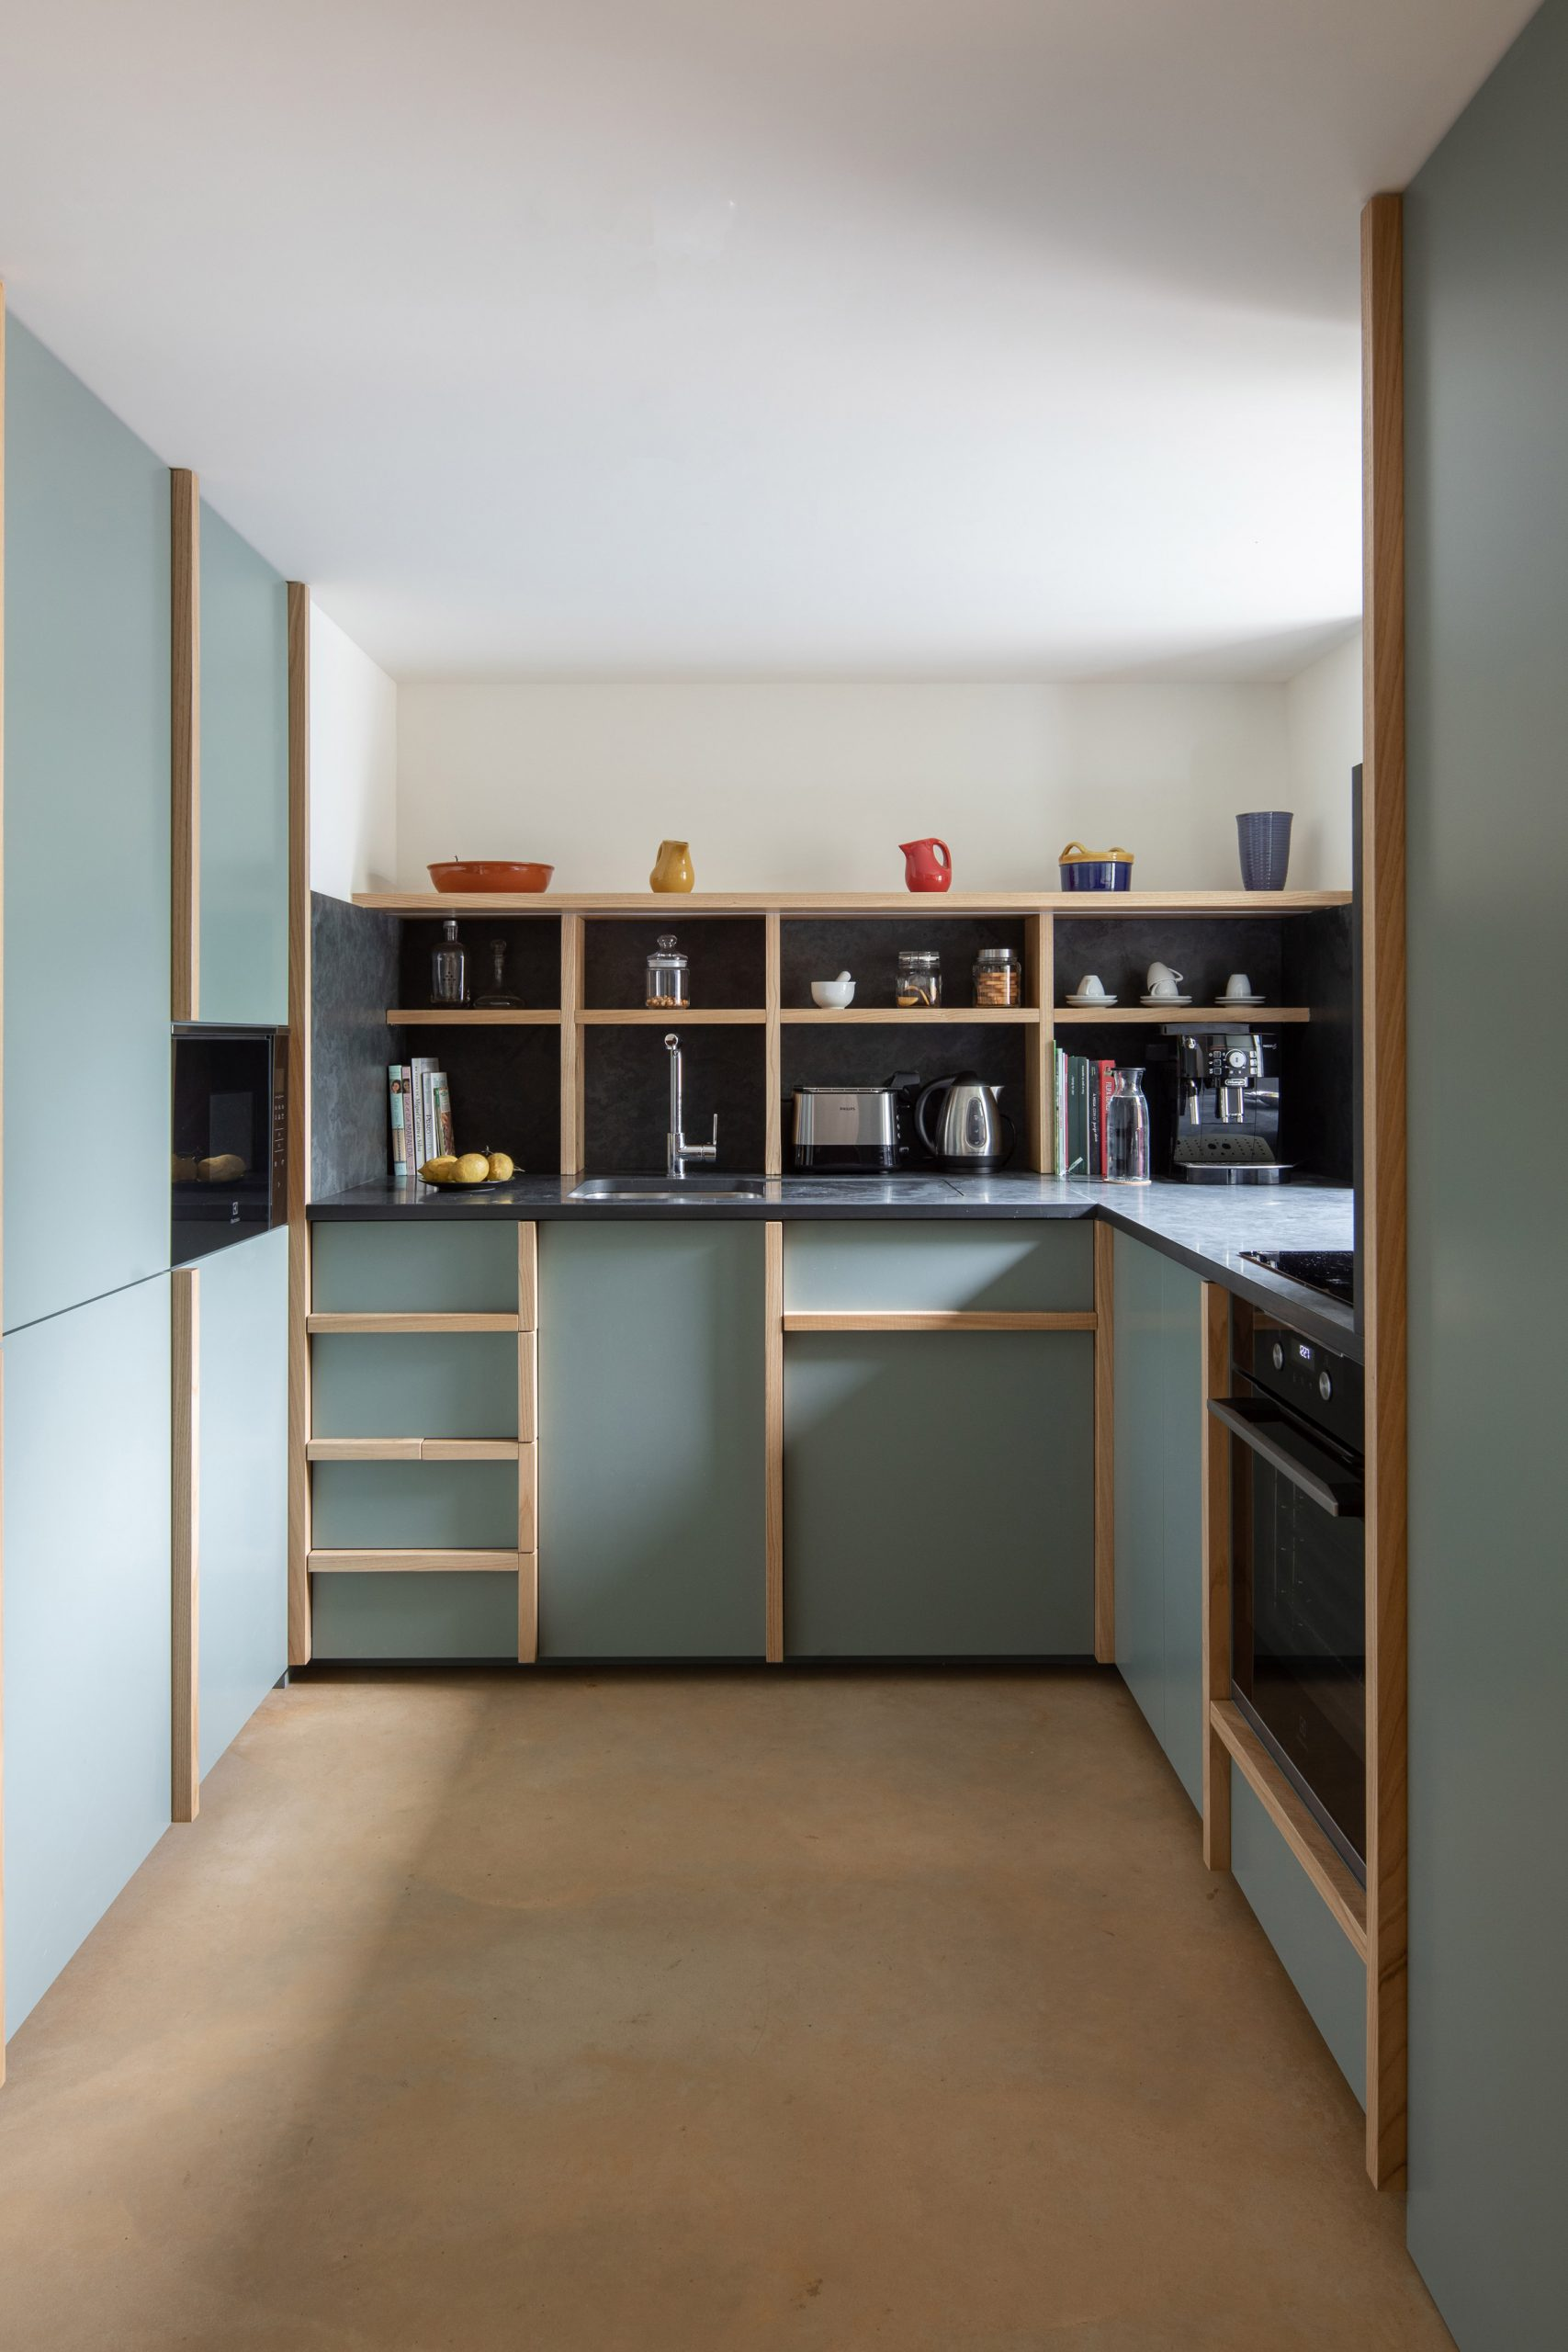 The kitchen is finished with a sage green by depA Architects